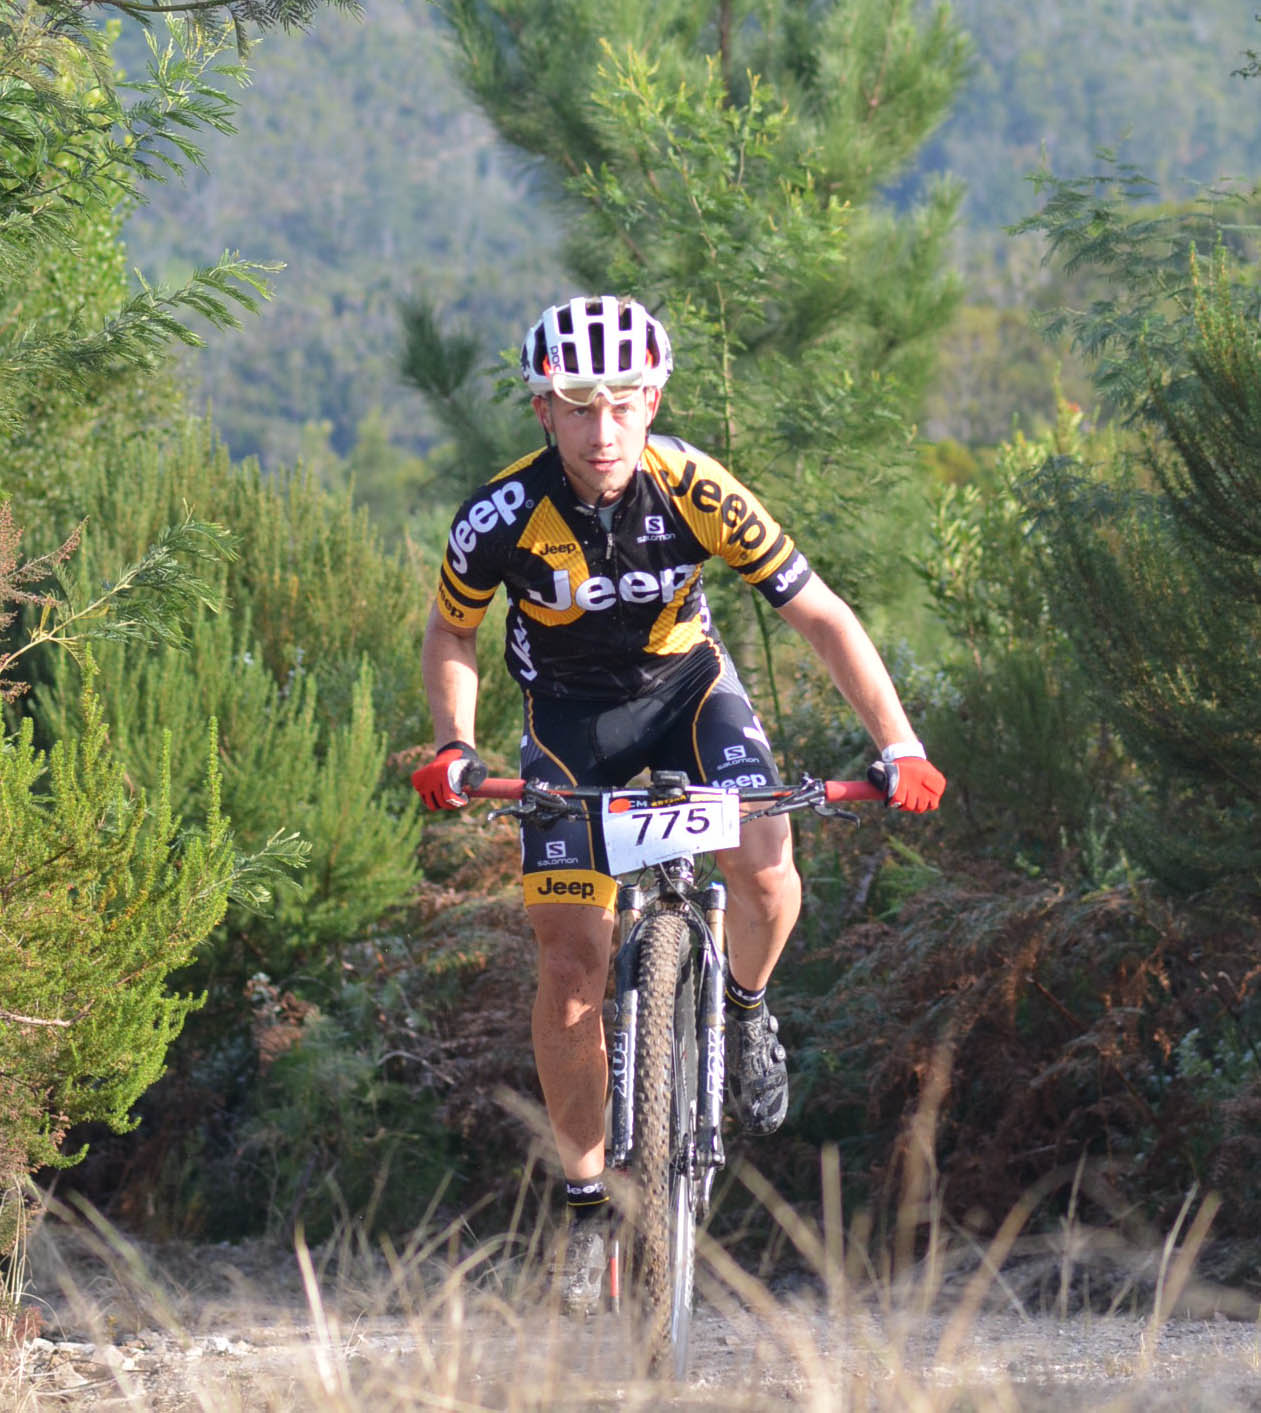 Former junior African cross-country champion Dylan Rebello (Jeep) won stage two of the three-day RECM Knysna 200 mountain bike race on Sunday. The Knysna local is currently second overall behind Nico Pfitzenmaier (Dorma). Photo: Full Stop Communications